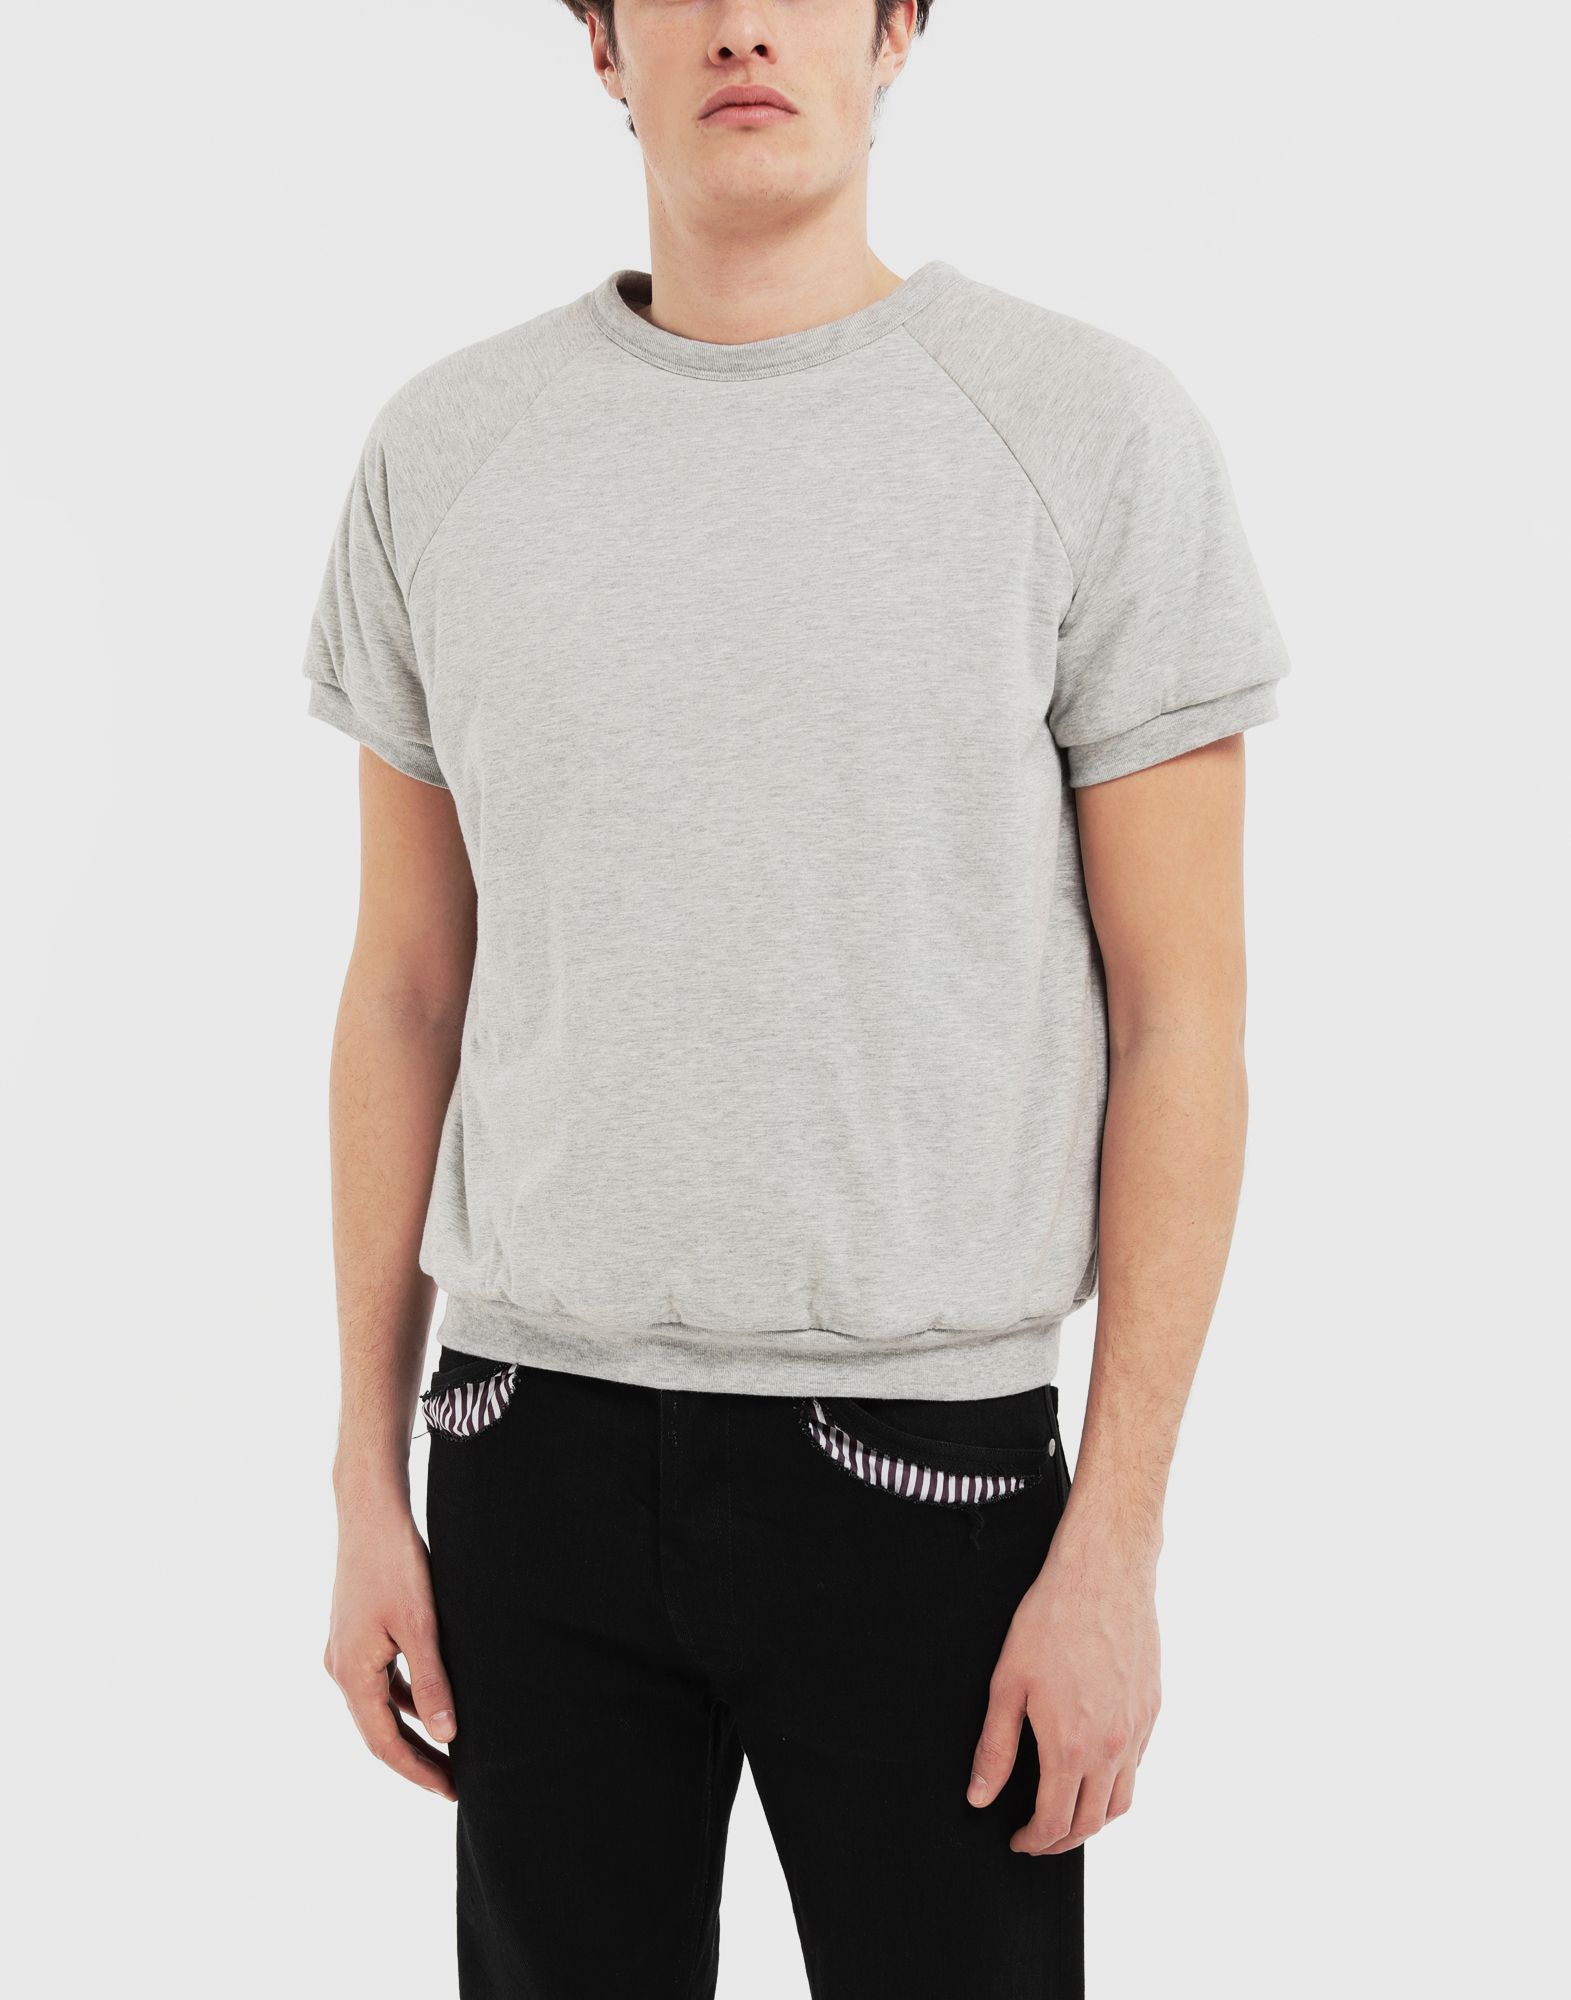 MAISON MARGIELA 'Caution' top Sweatshirt Man r